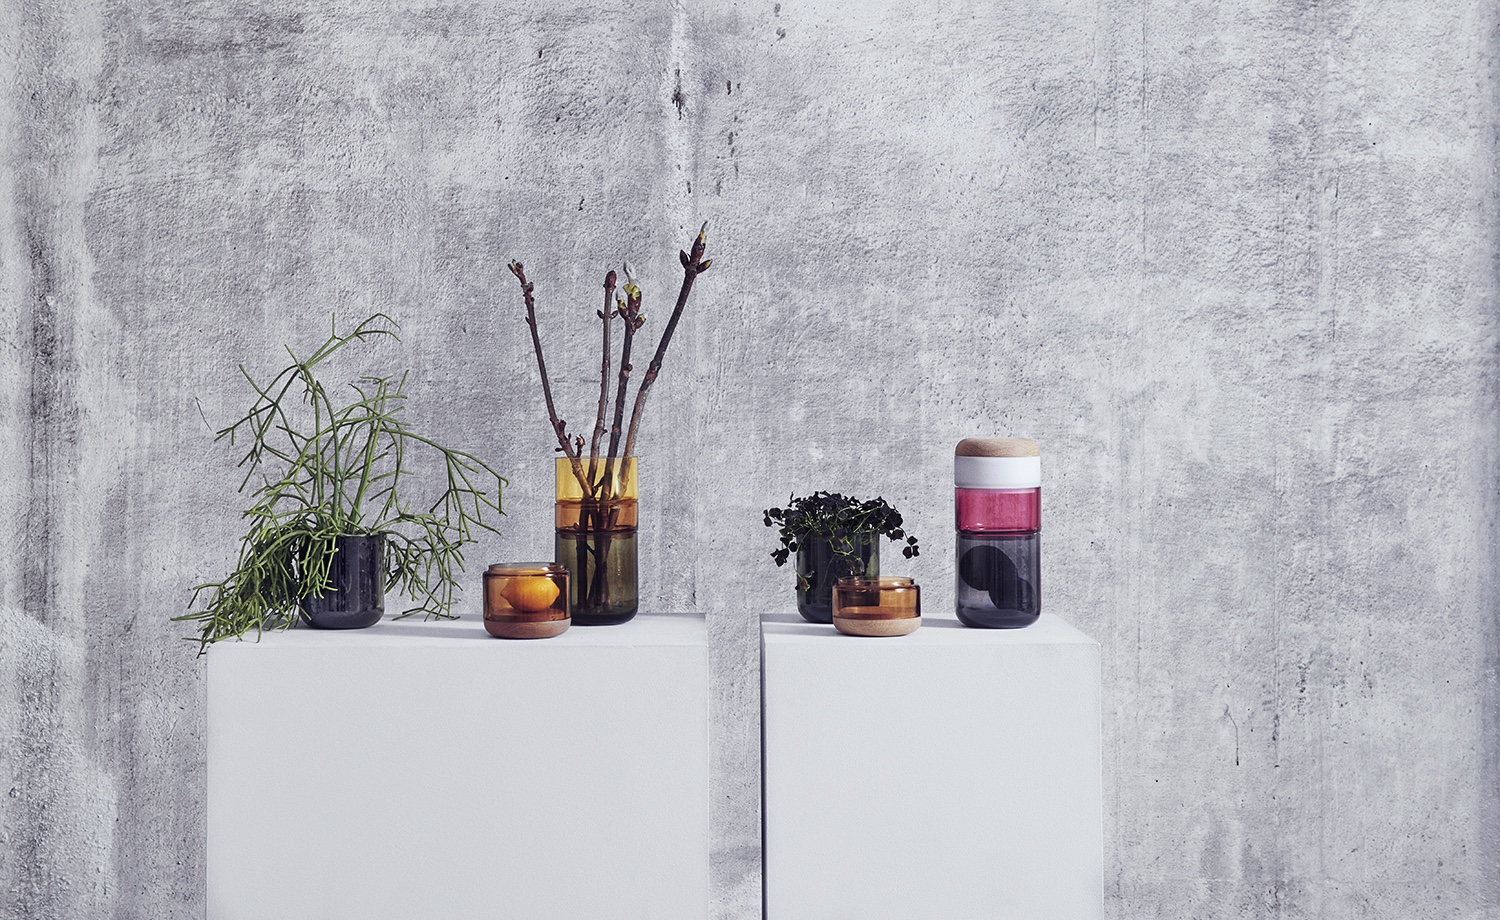 Pi-No-Pi-No Vase designed by Maija Puoskari & Tuukka Tujula. Take it apart or stack it together: the Pi-No-Pi-N vase is flexible and versatile.